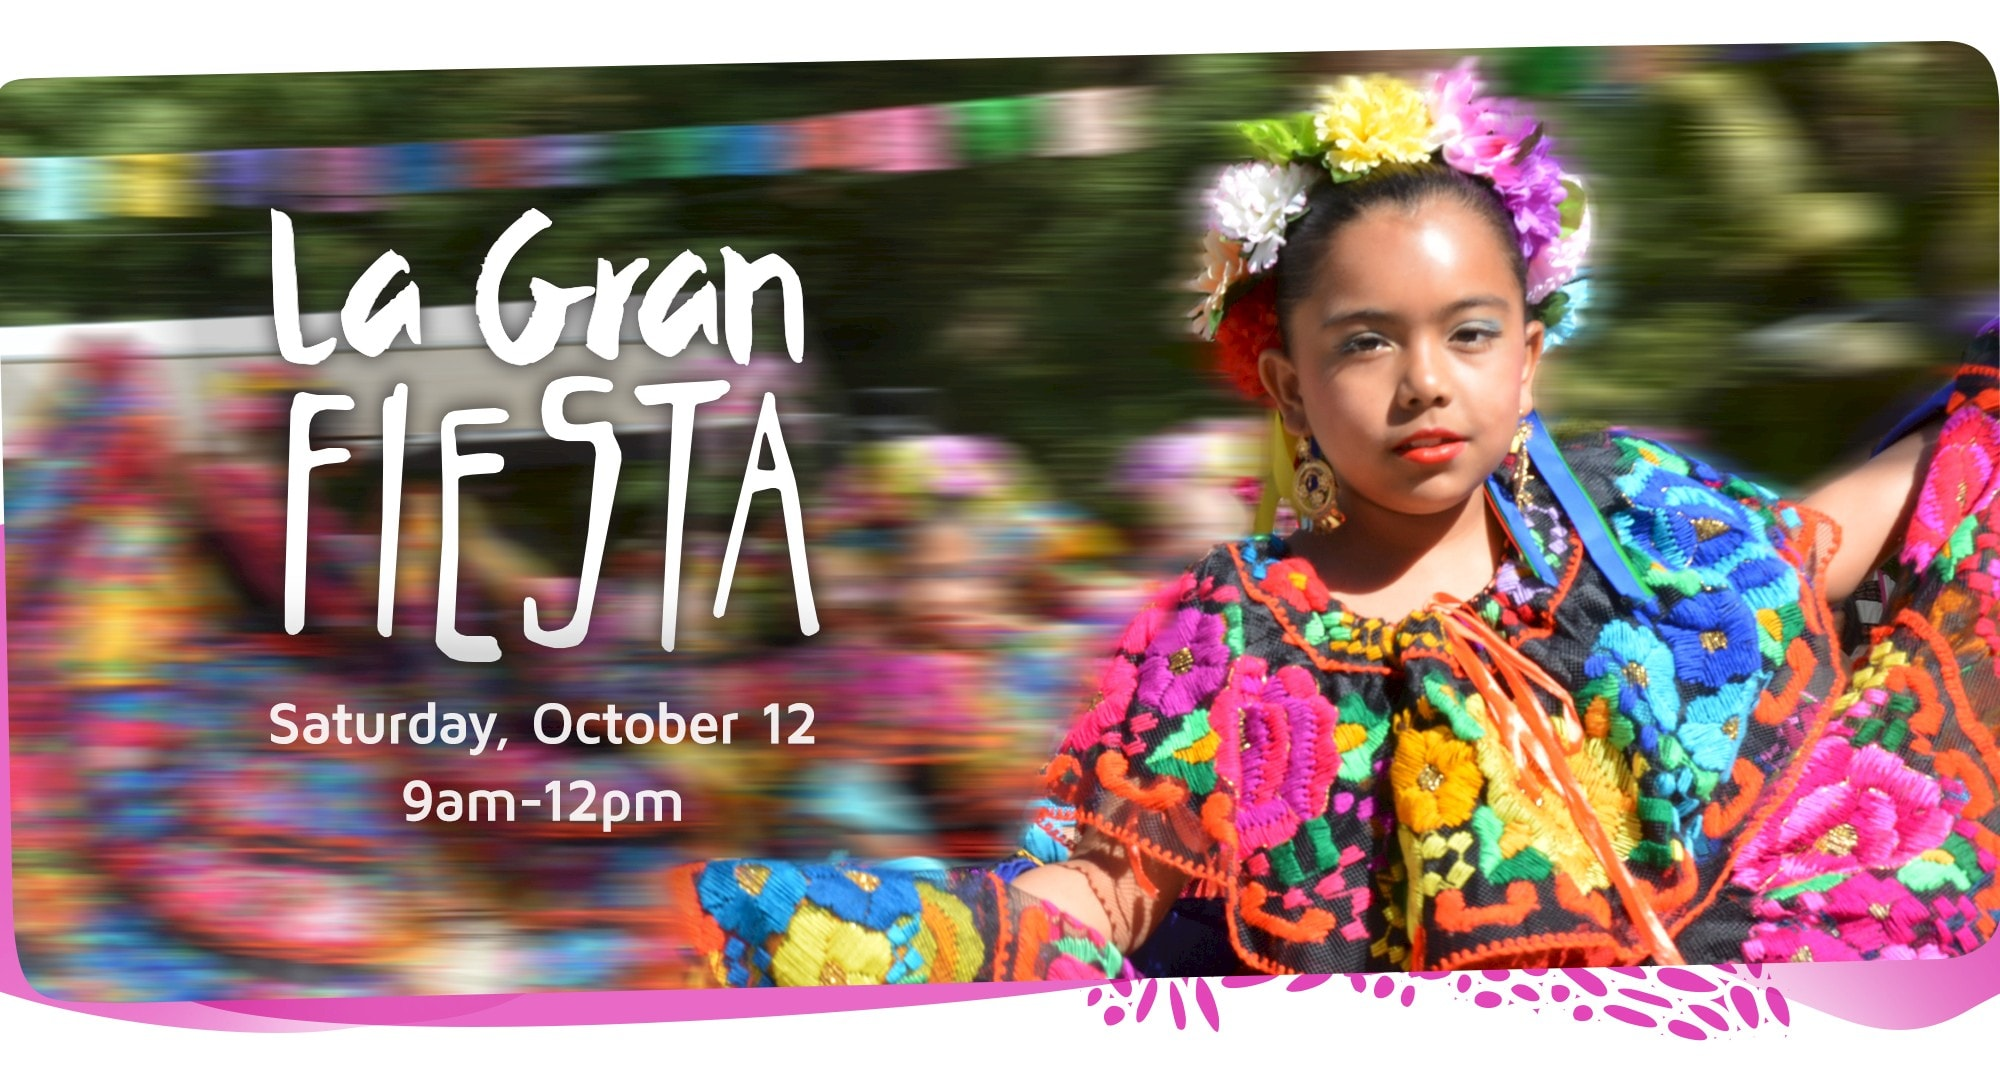 Celebrate Hispanic Heritage month with delicious food, mariachi bands and more. Click for more information.